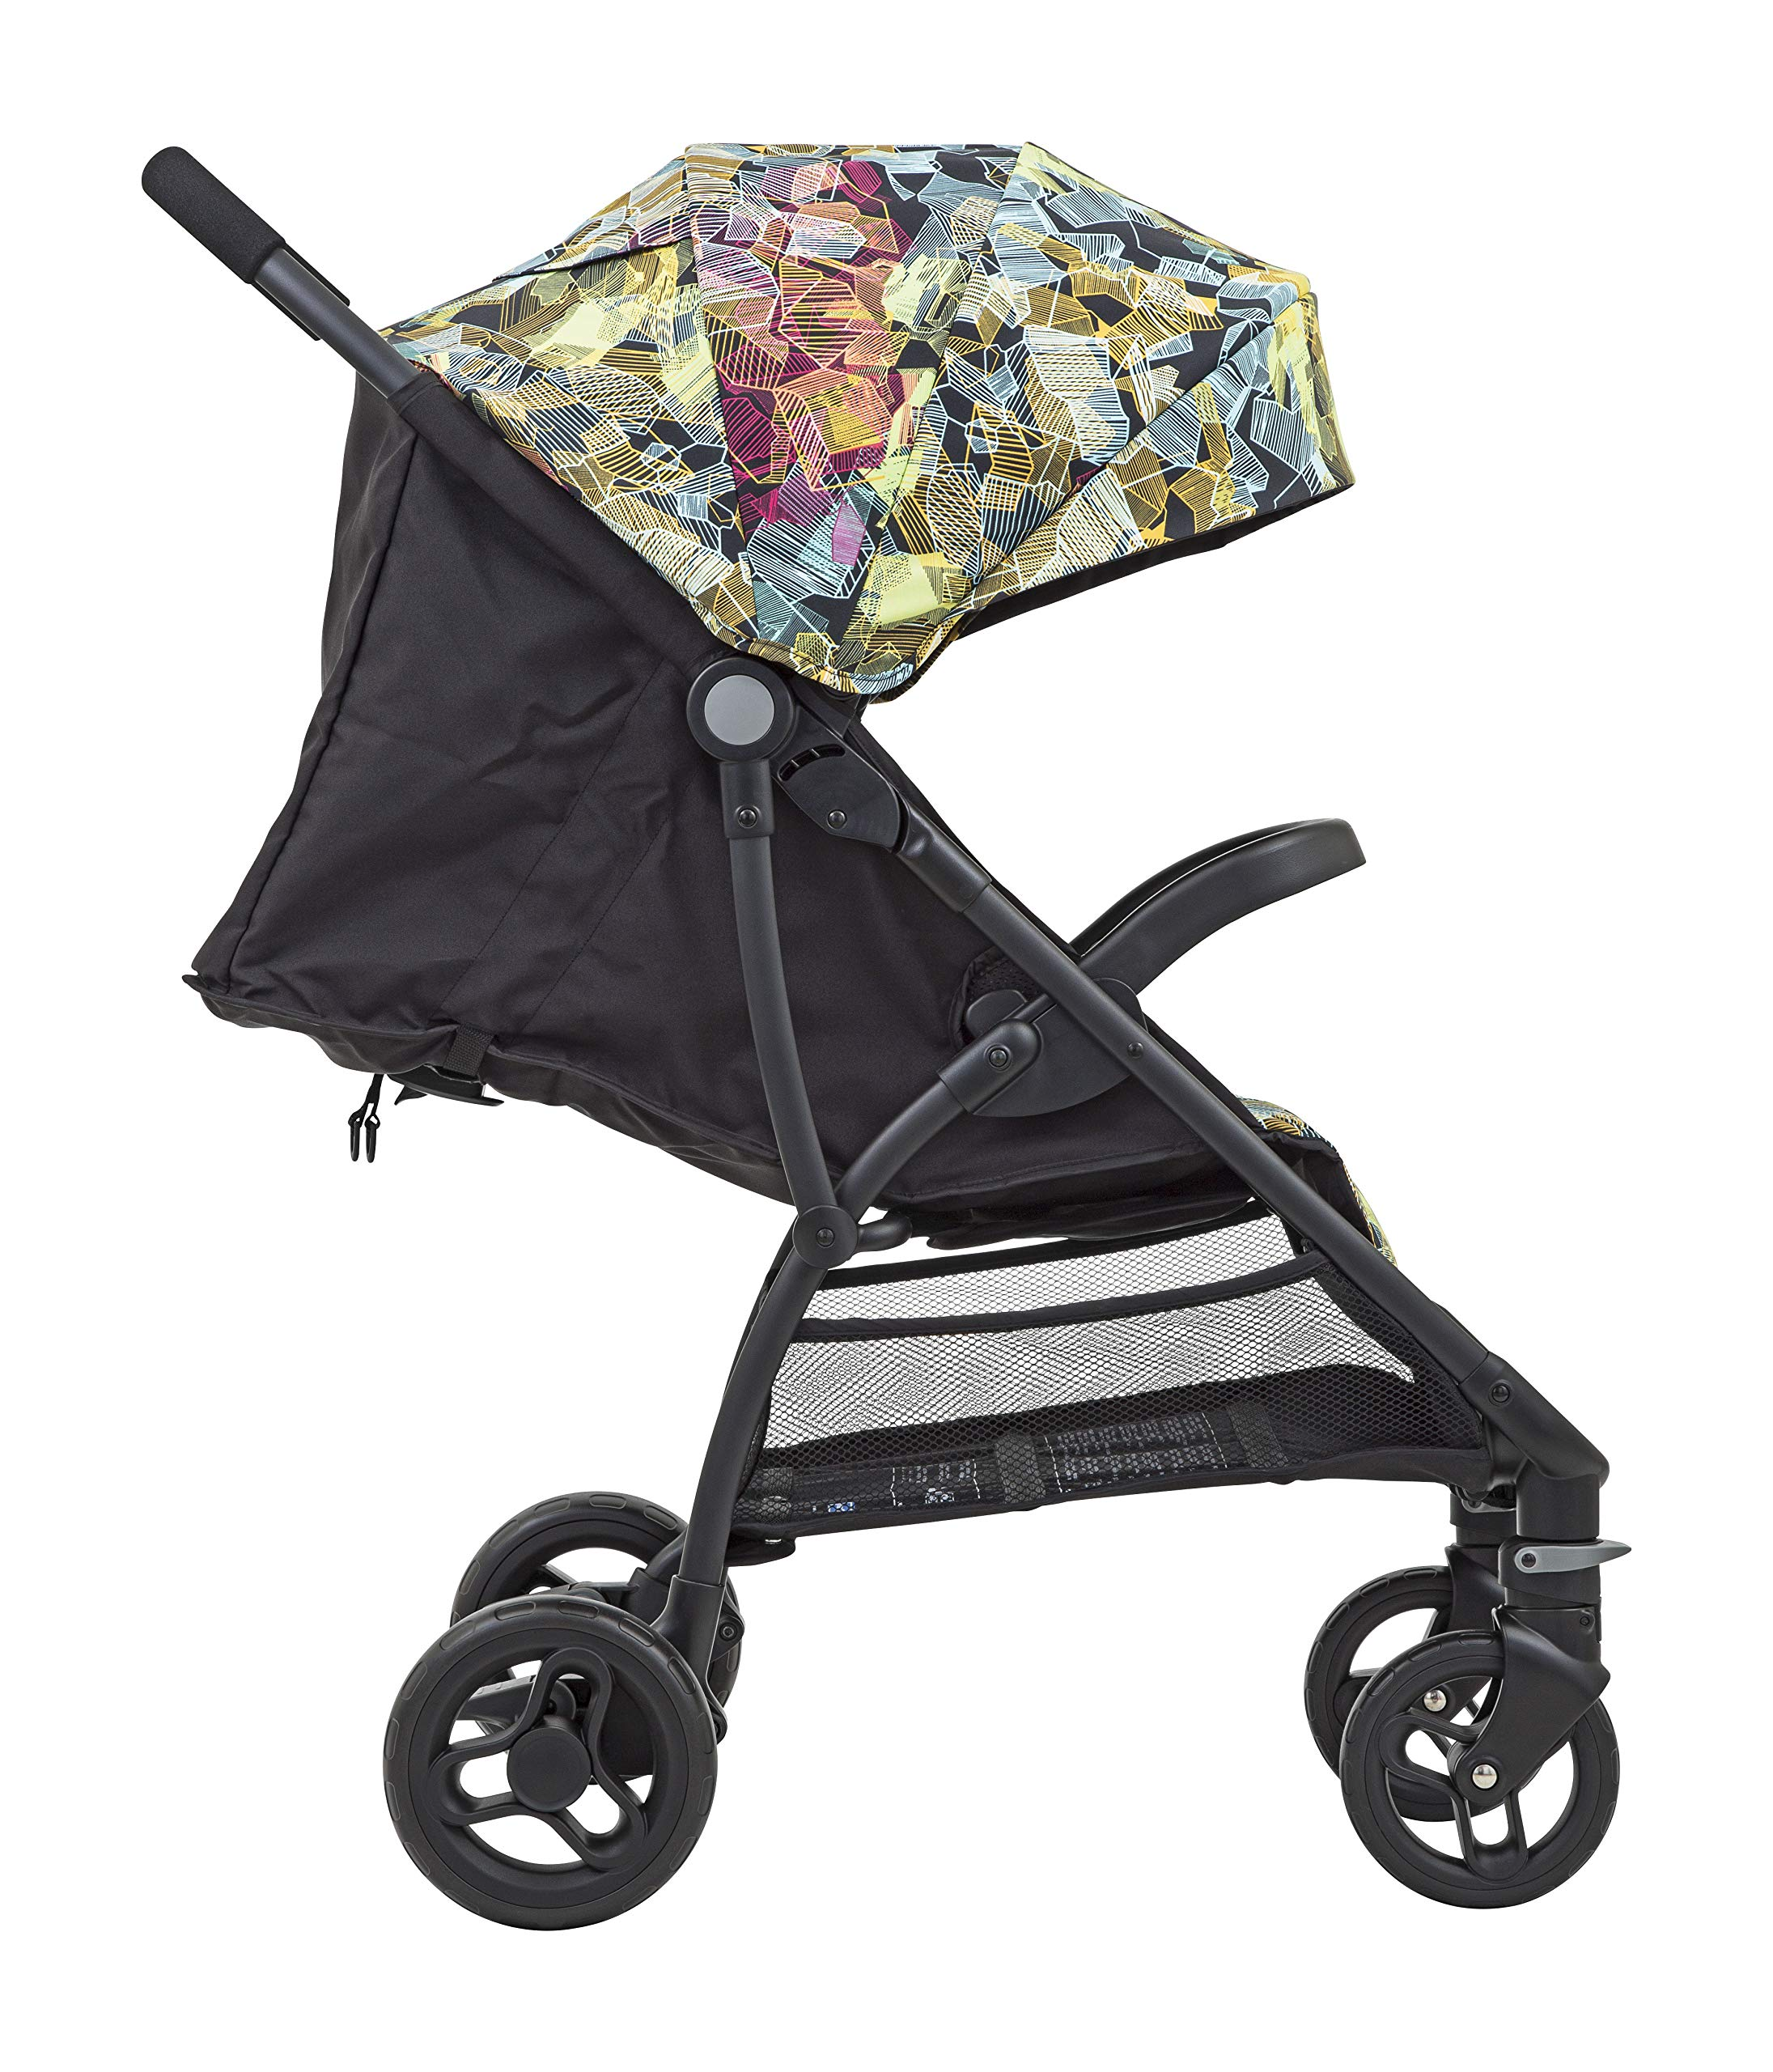 Graco Breaze Lite Stroller, Kaleidoscope Graco From birth to 3 years approx. (0-15kg) Lightweight at only 6.5kg Click connect travel system compatible with graco snugride/snugessentials isize infant car seats 3